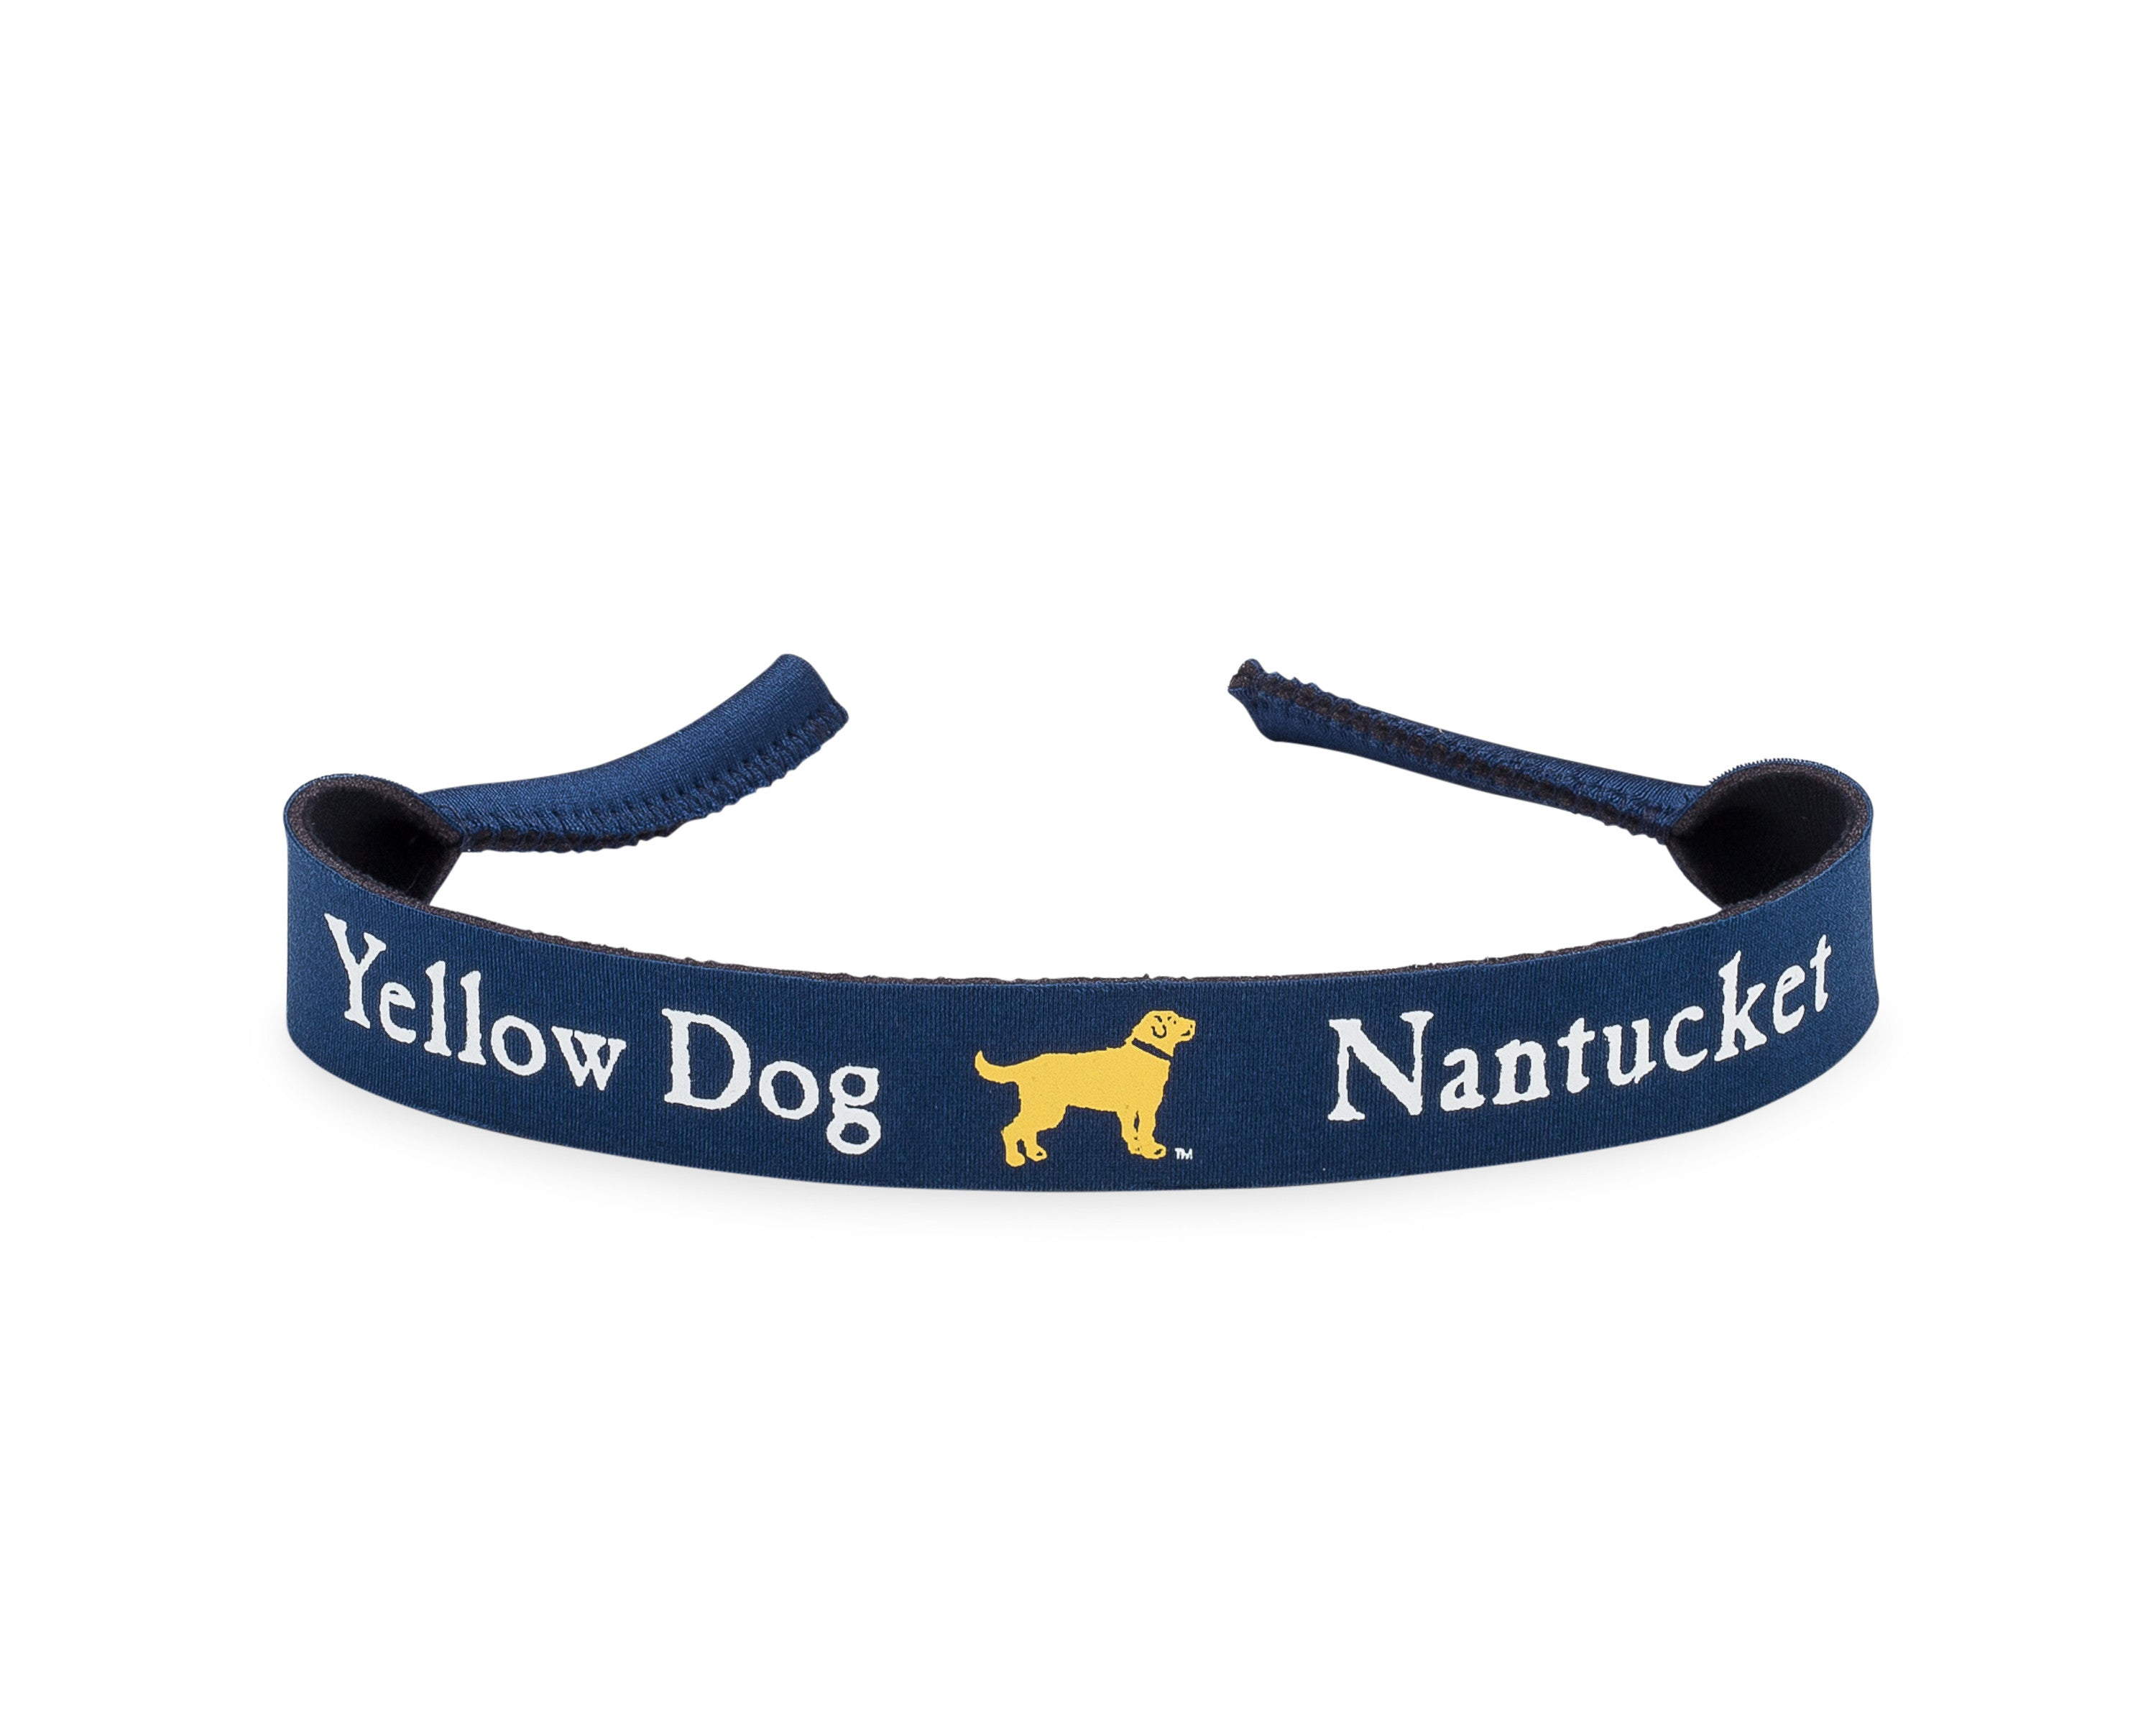 Yellow Dog Nantucket Navy Sunglass Strap Croakie